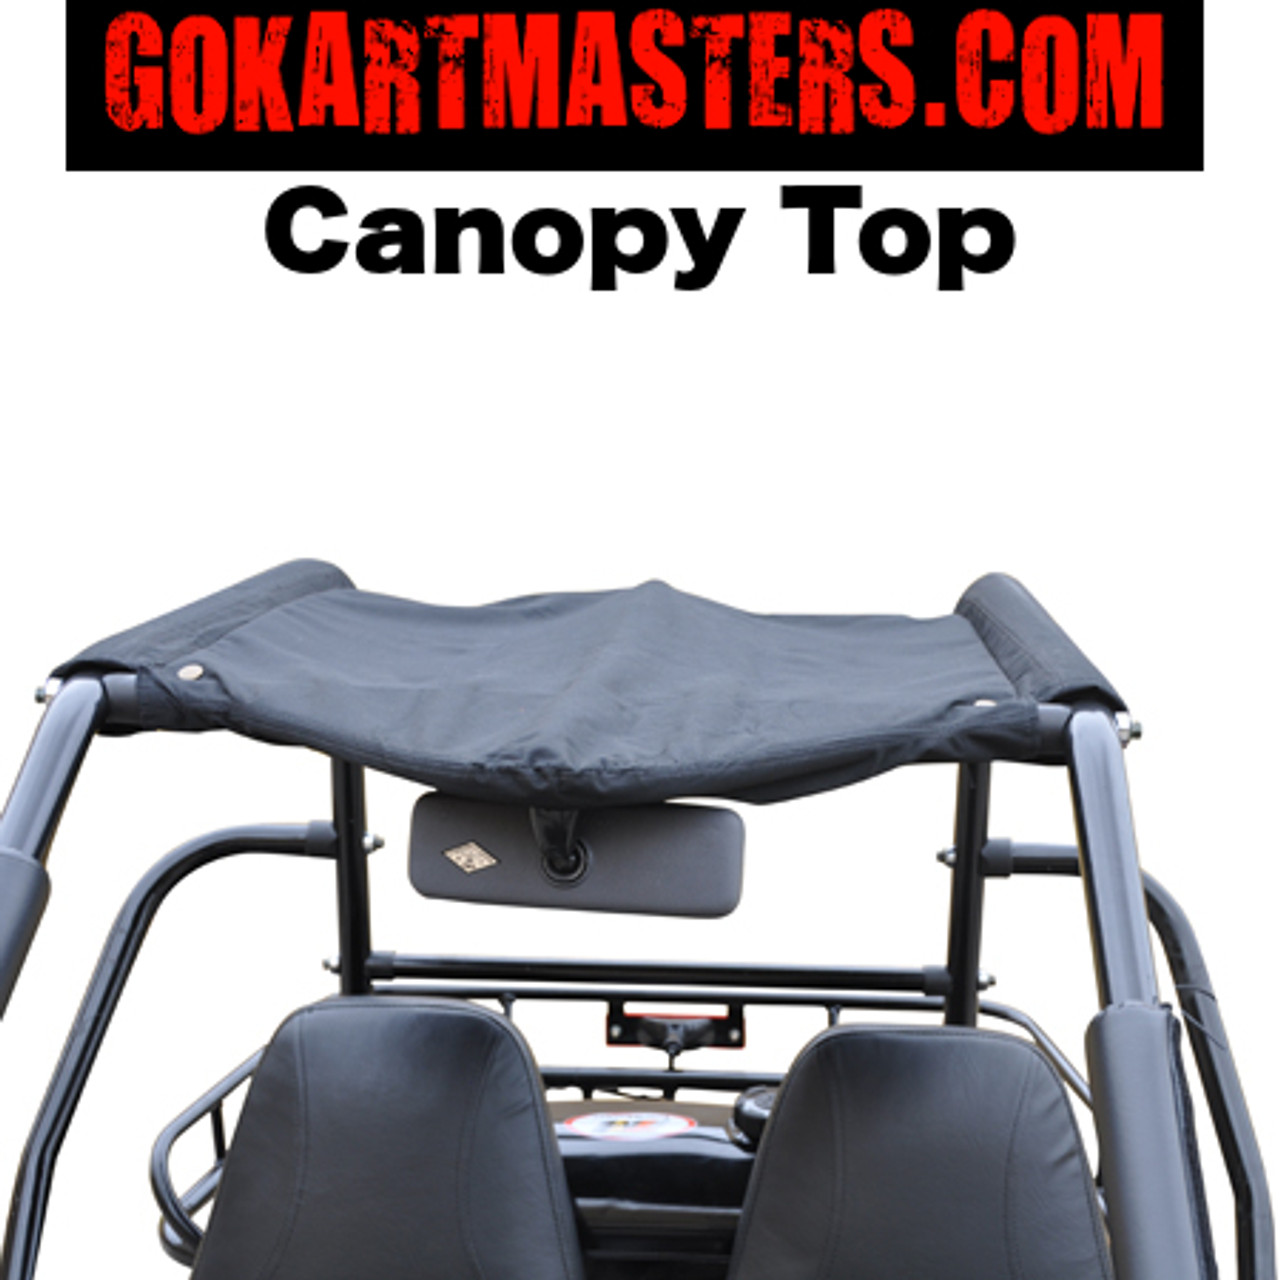 TrailMaster 150 XRS Go-Kart - Canopy Top